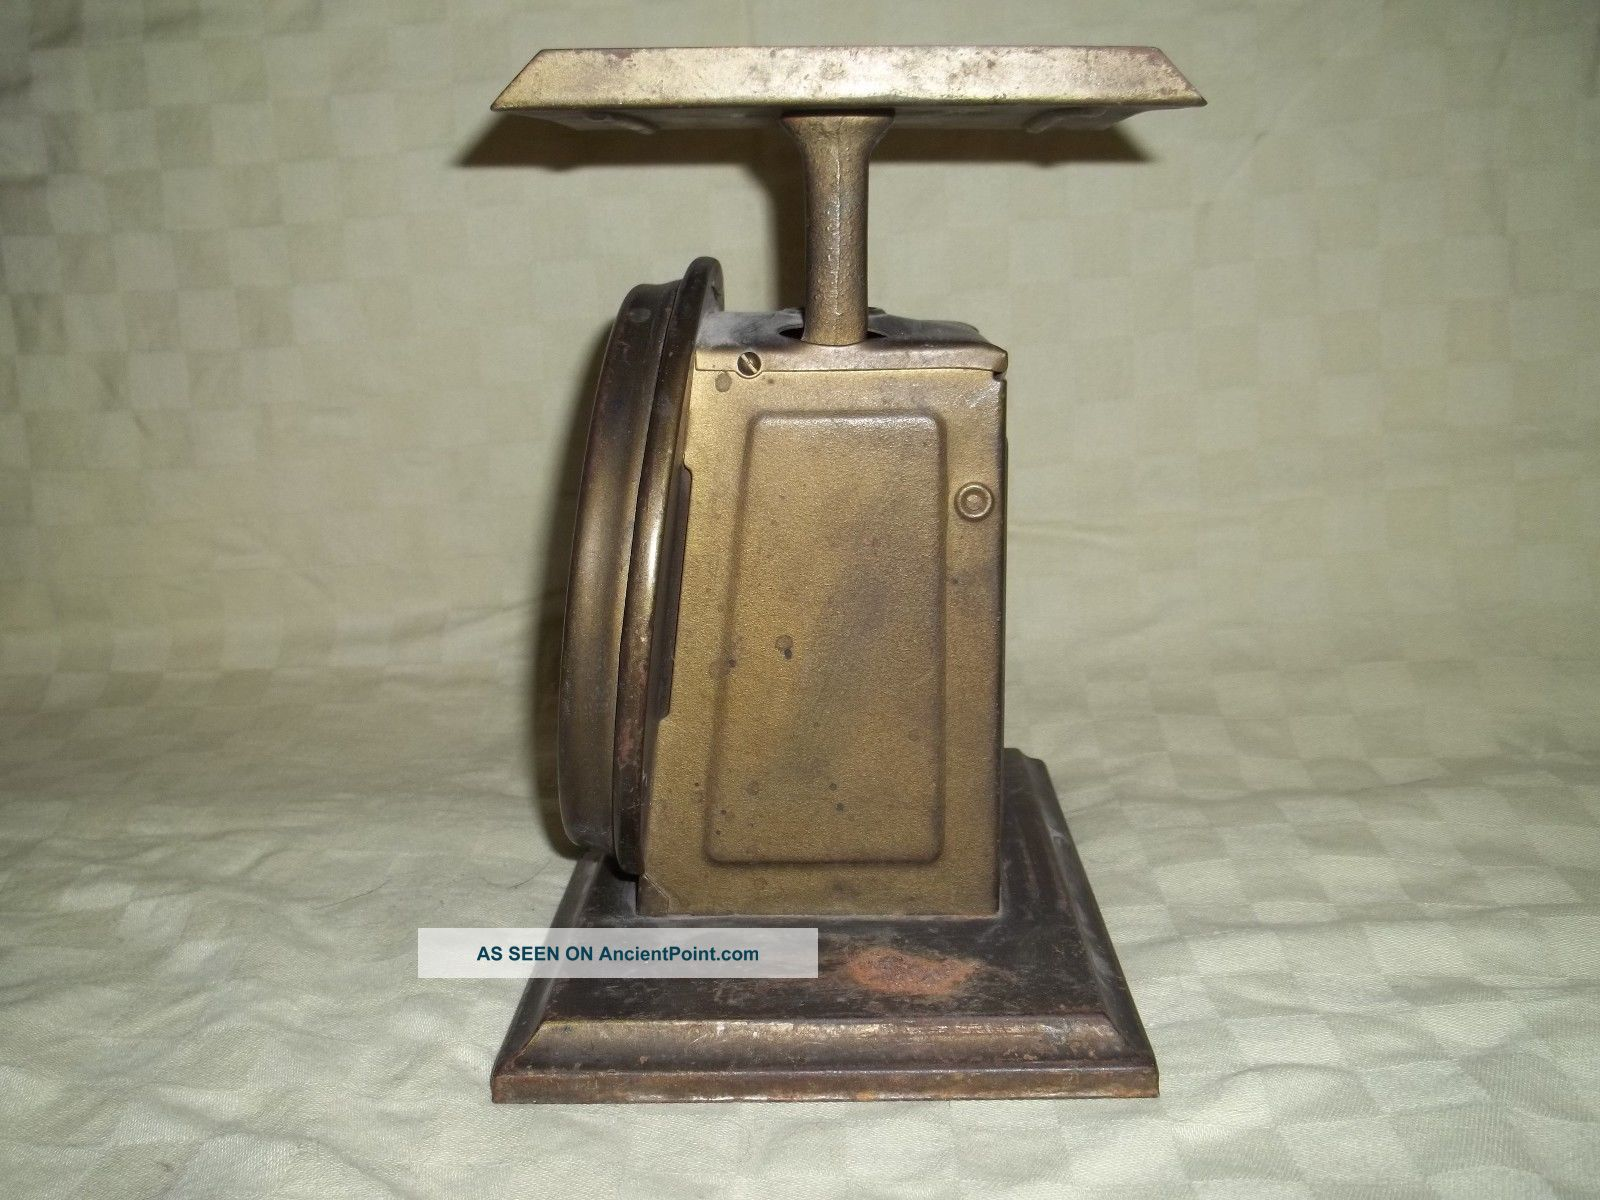 Vintage Early 1900s Pelouze Mfg Co Parcel Post Postal Scale